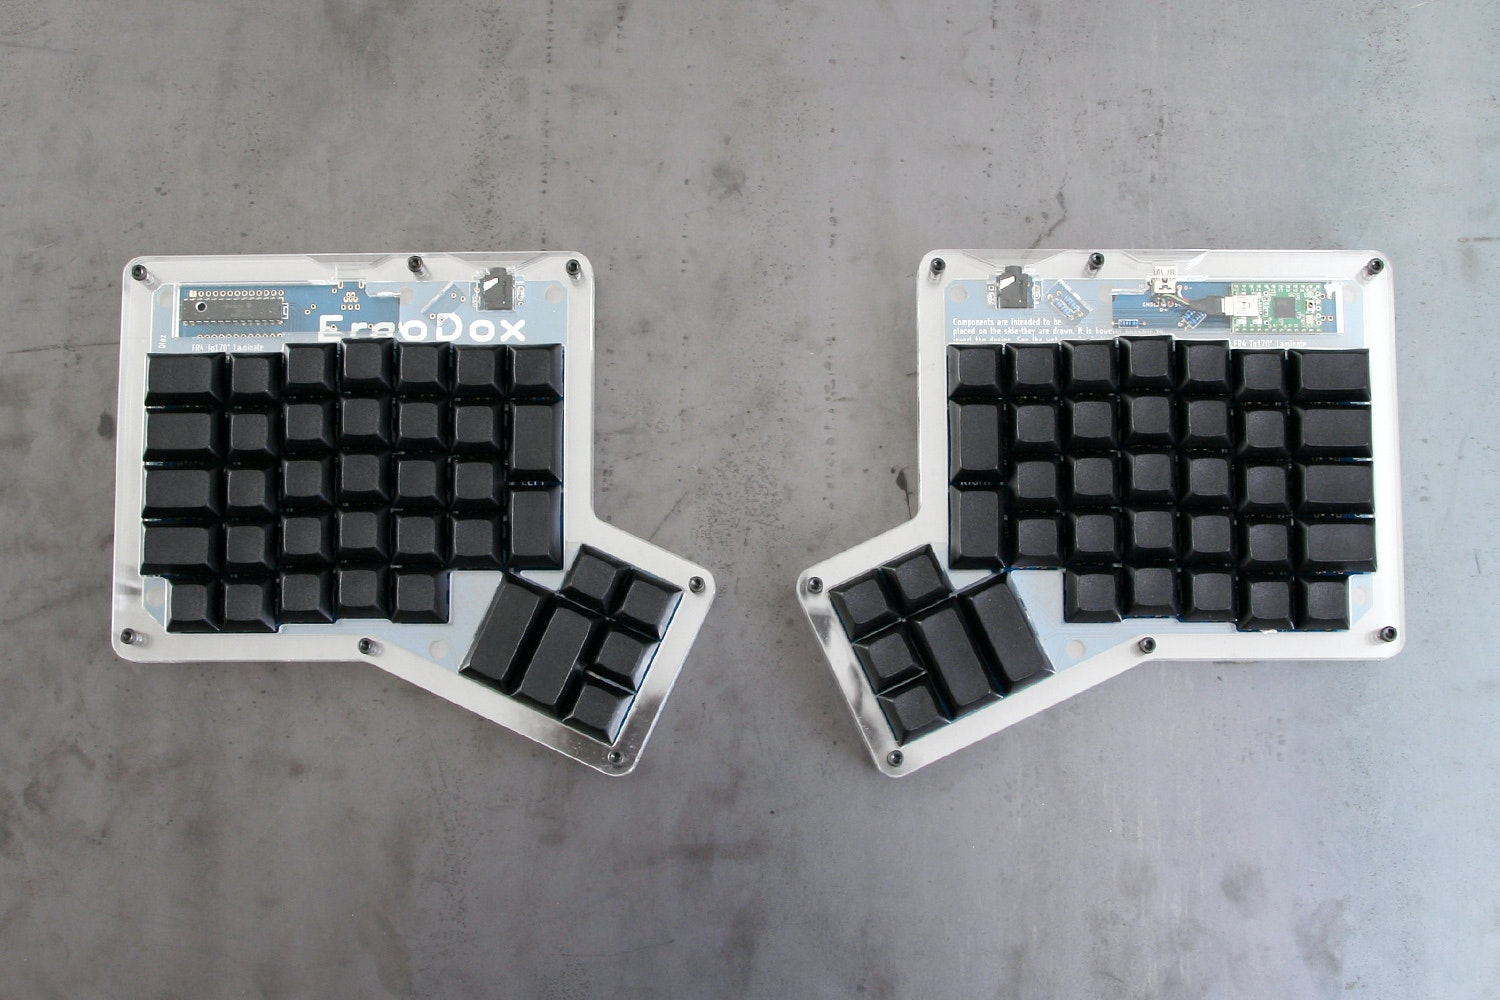 ErgoDox Ergonomic Mechanical Keyboard Kit